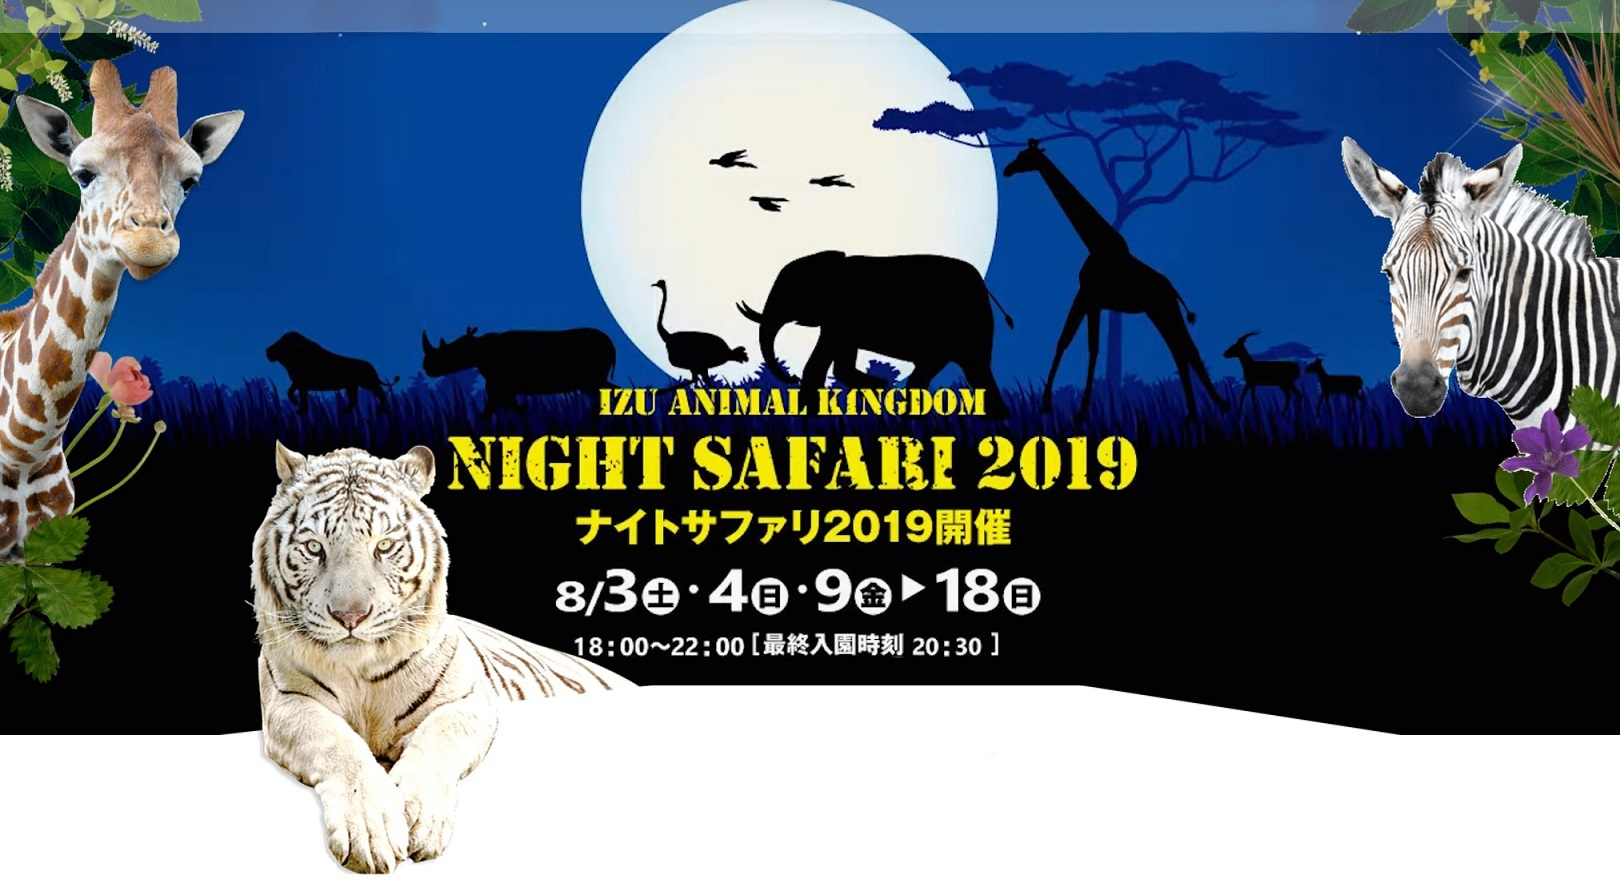 2019 night safari homepage mini